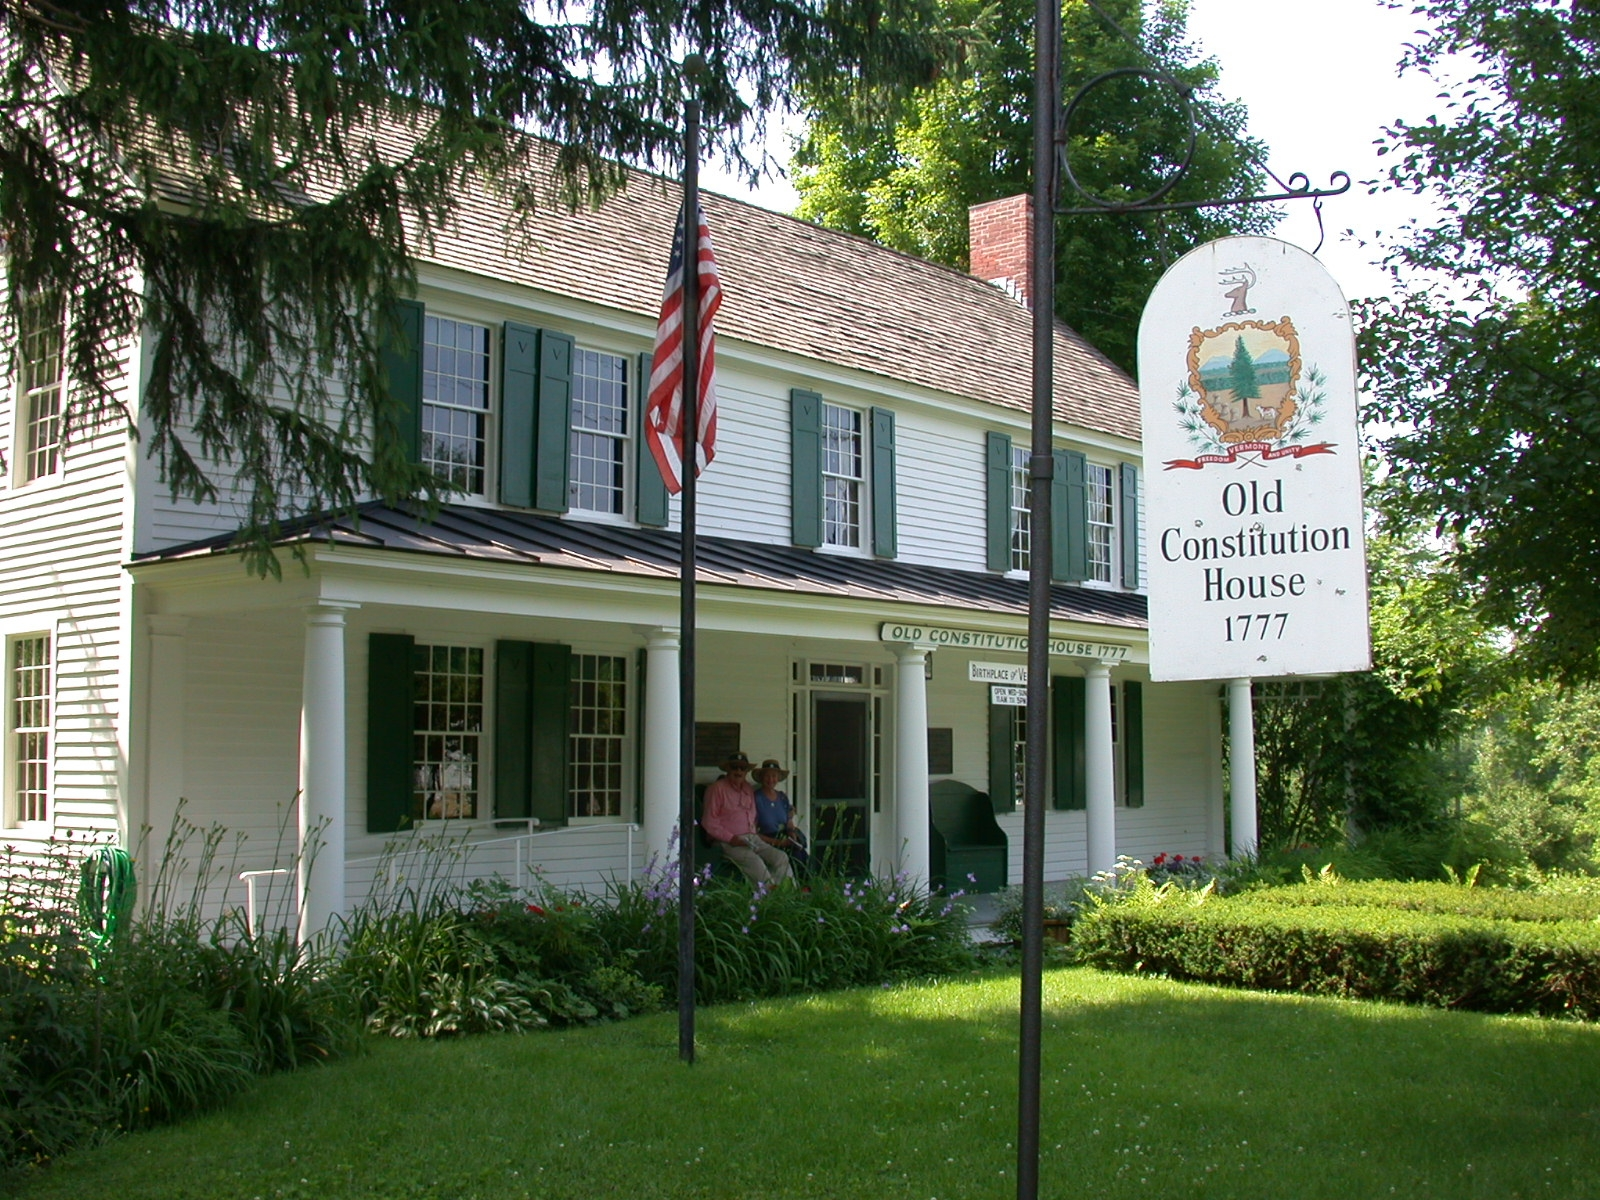 Windsor vermont wikipedia for Windsor house